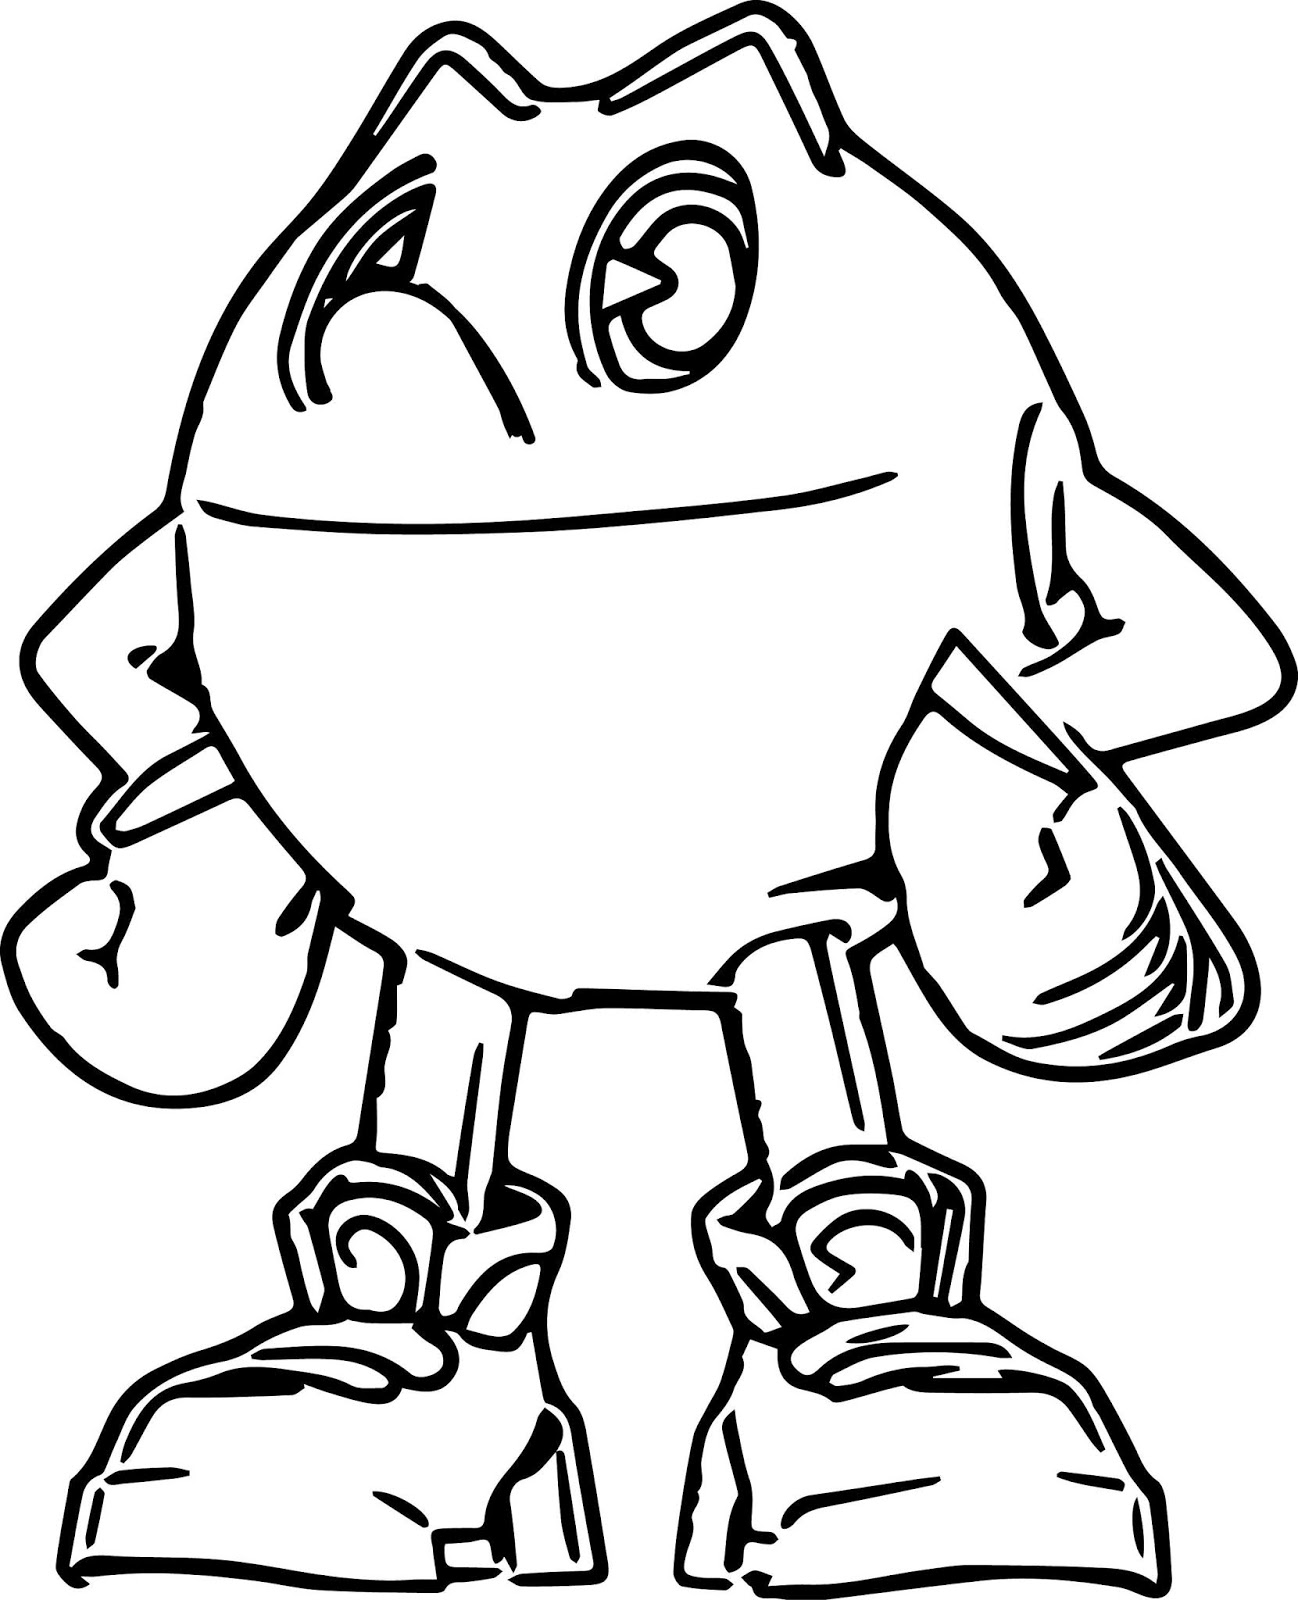 click the cool pacman coloring pages to view printable